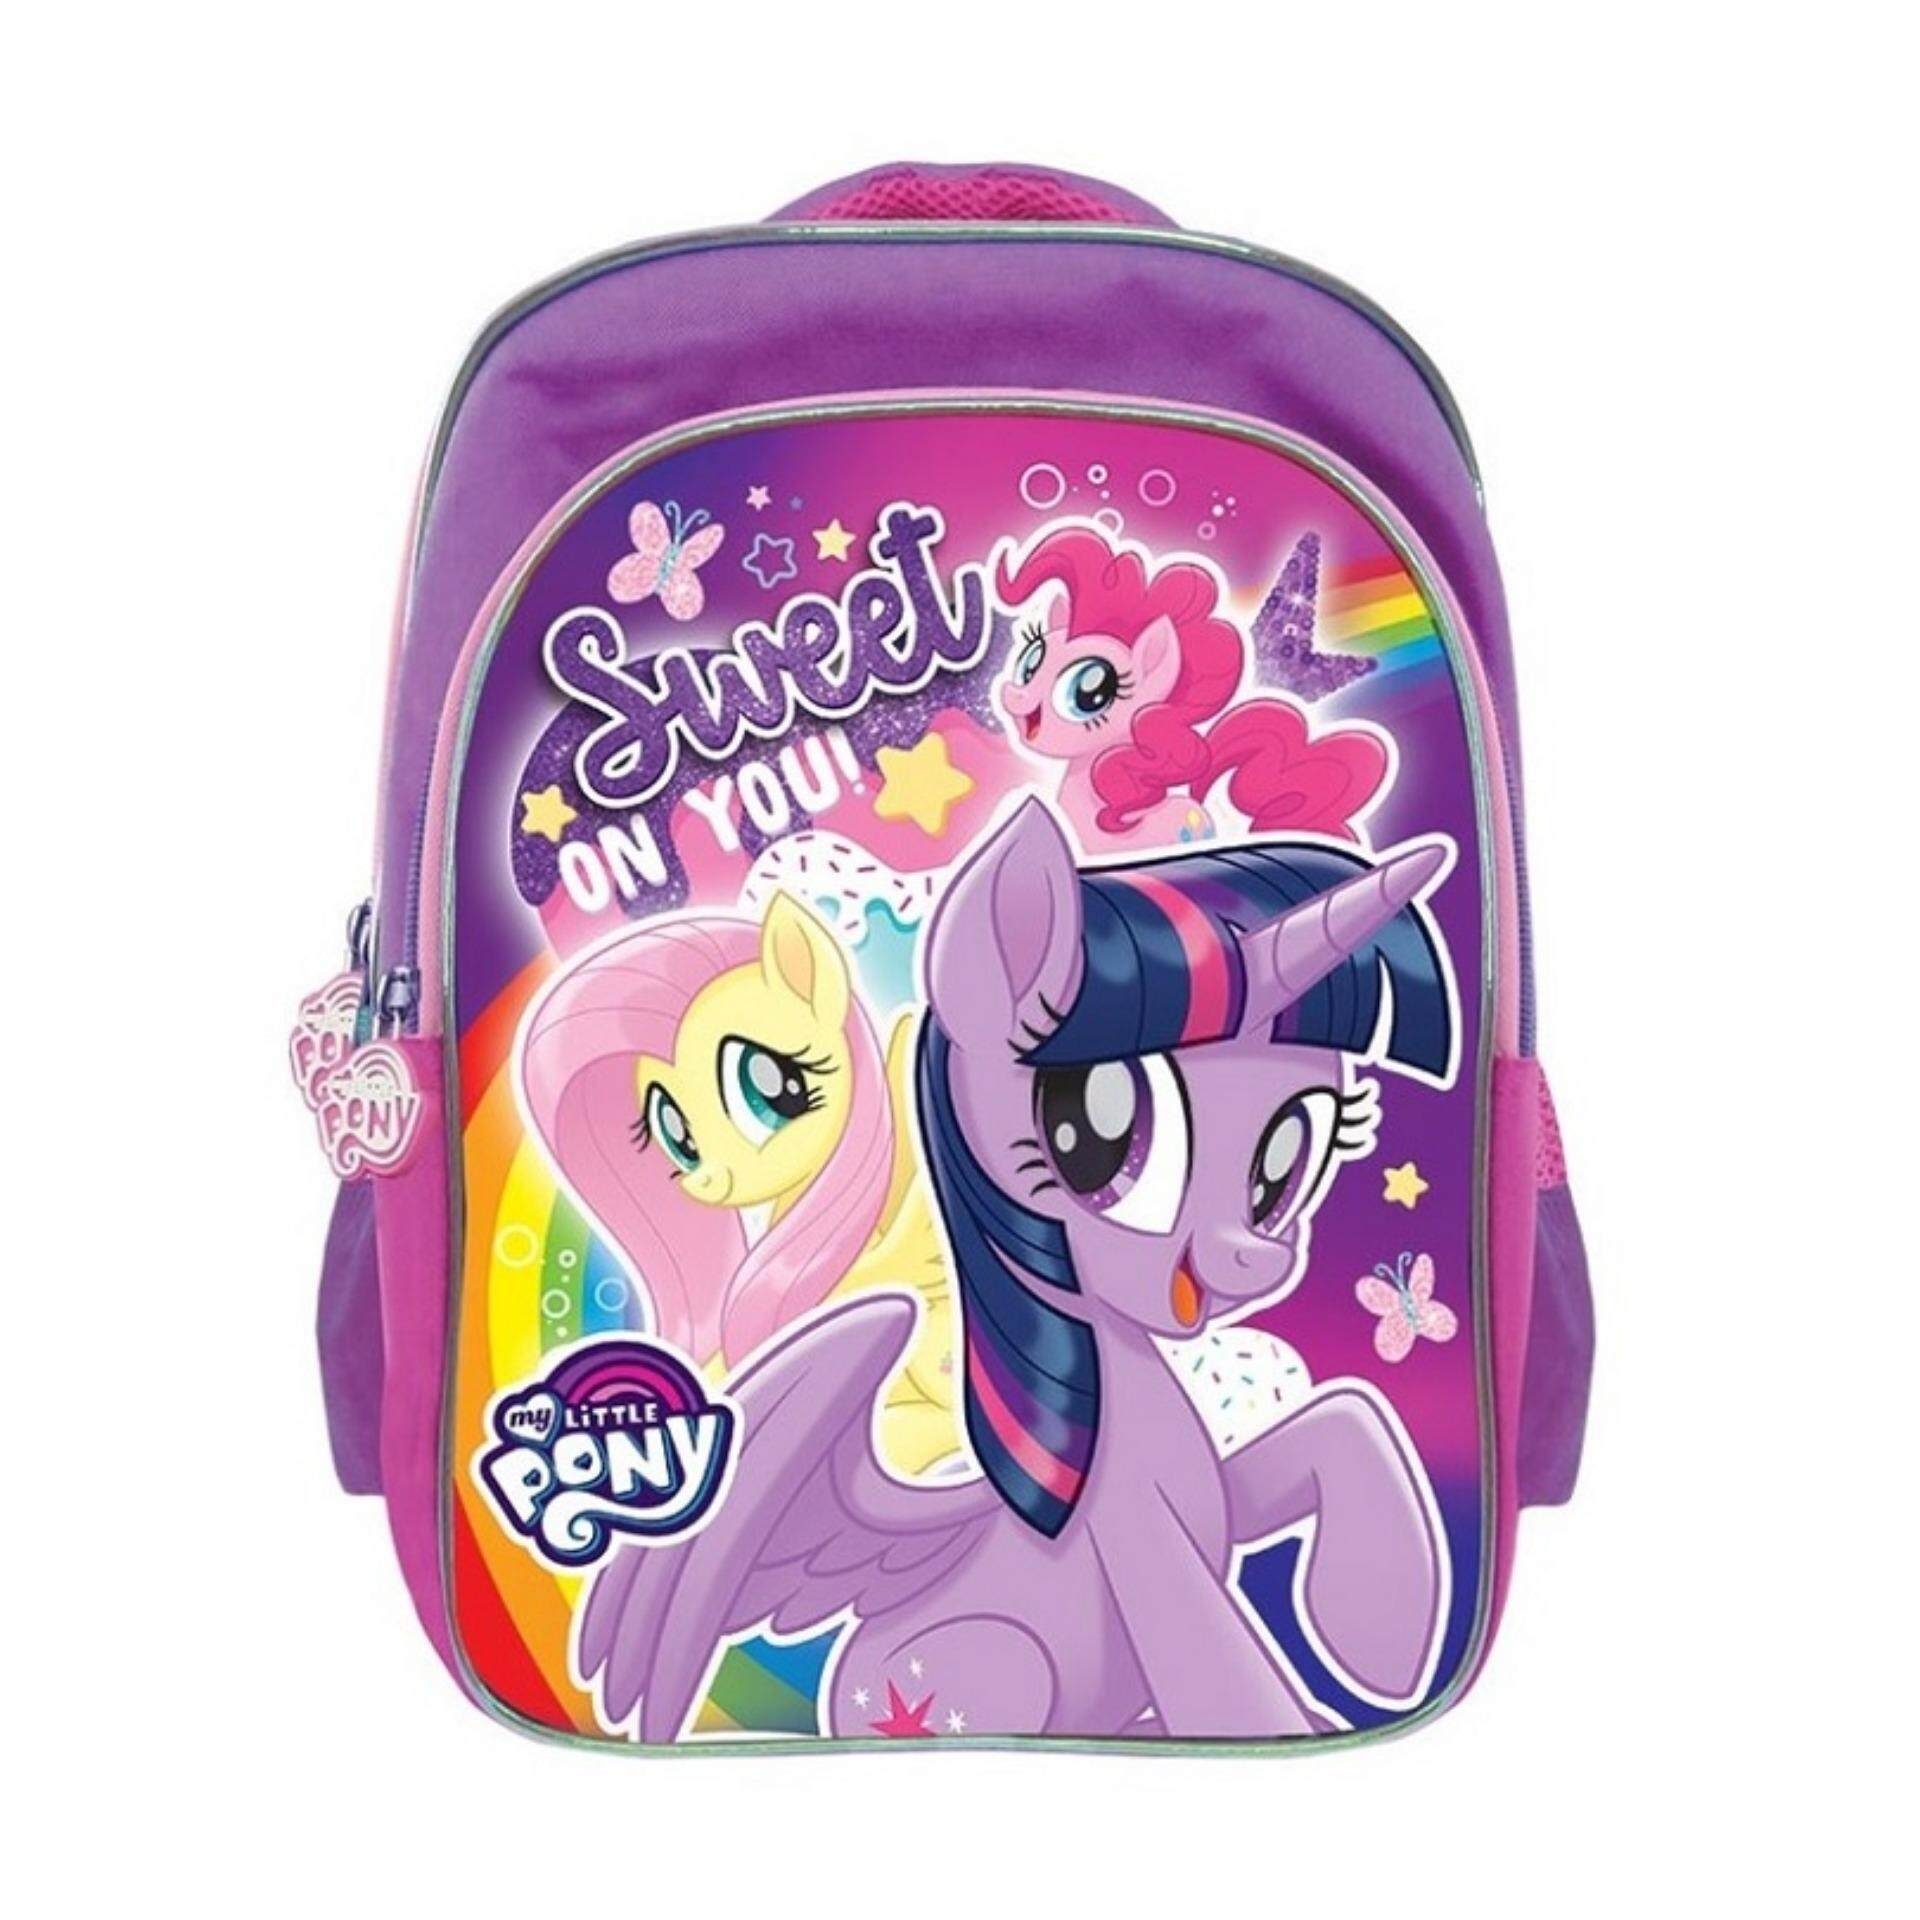 296c59ae88e2 My Little Pony Backpack School Bag 12 Inches - Purple Colour